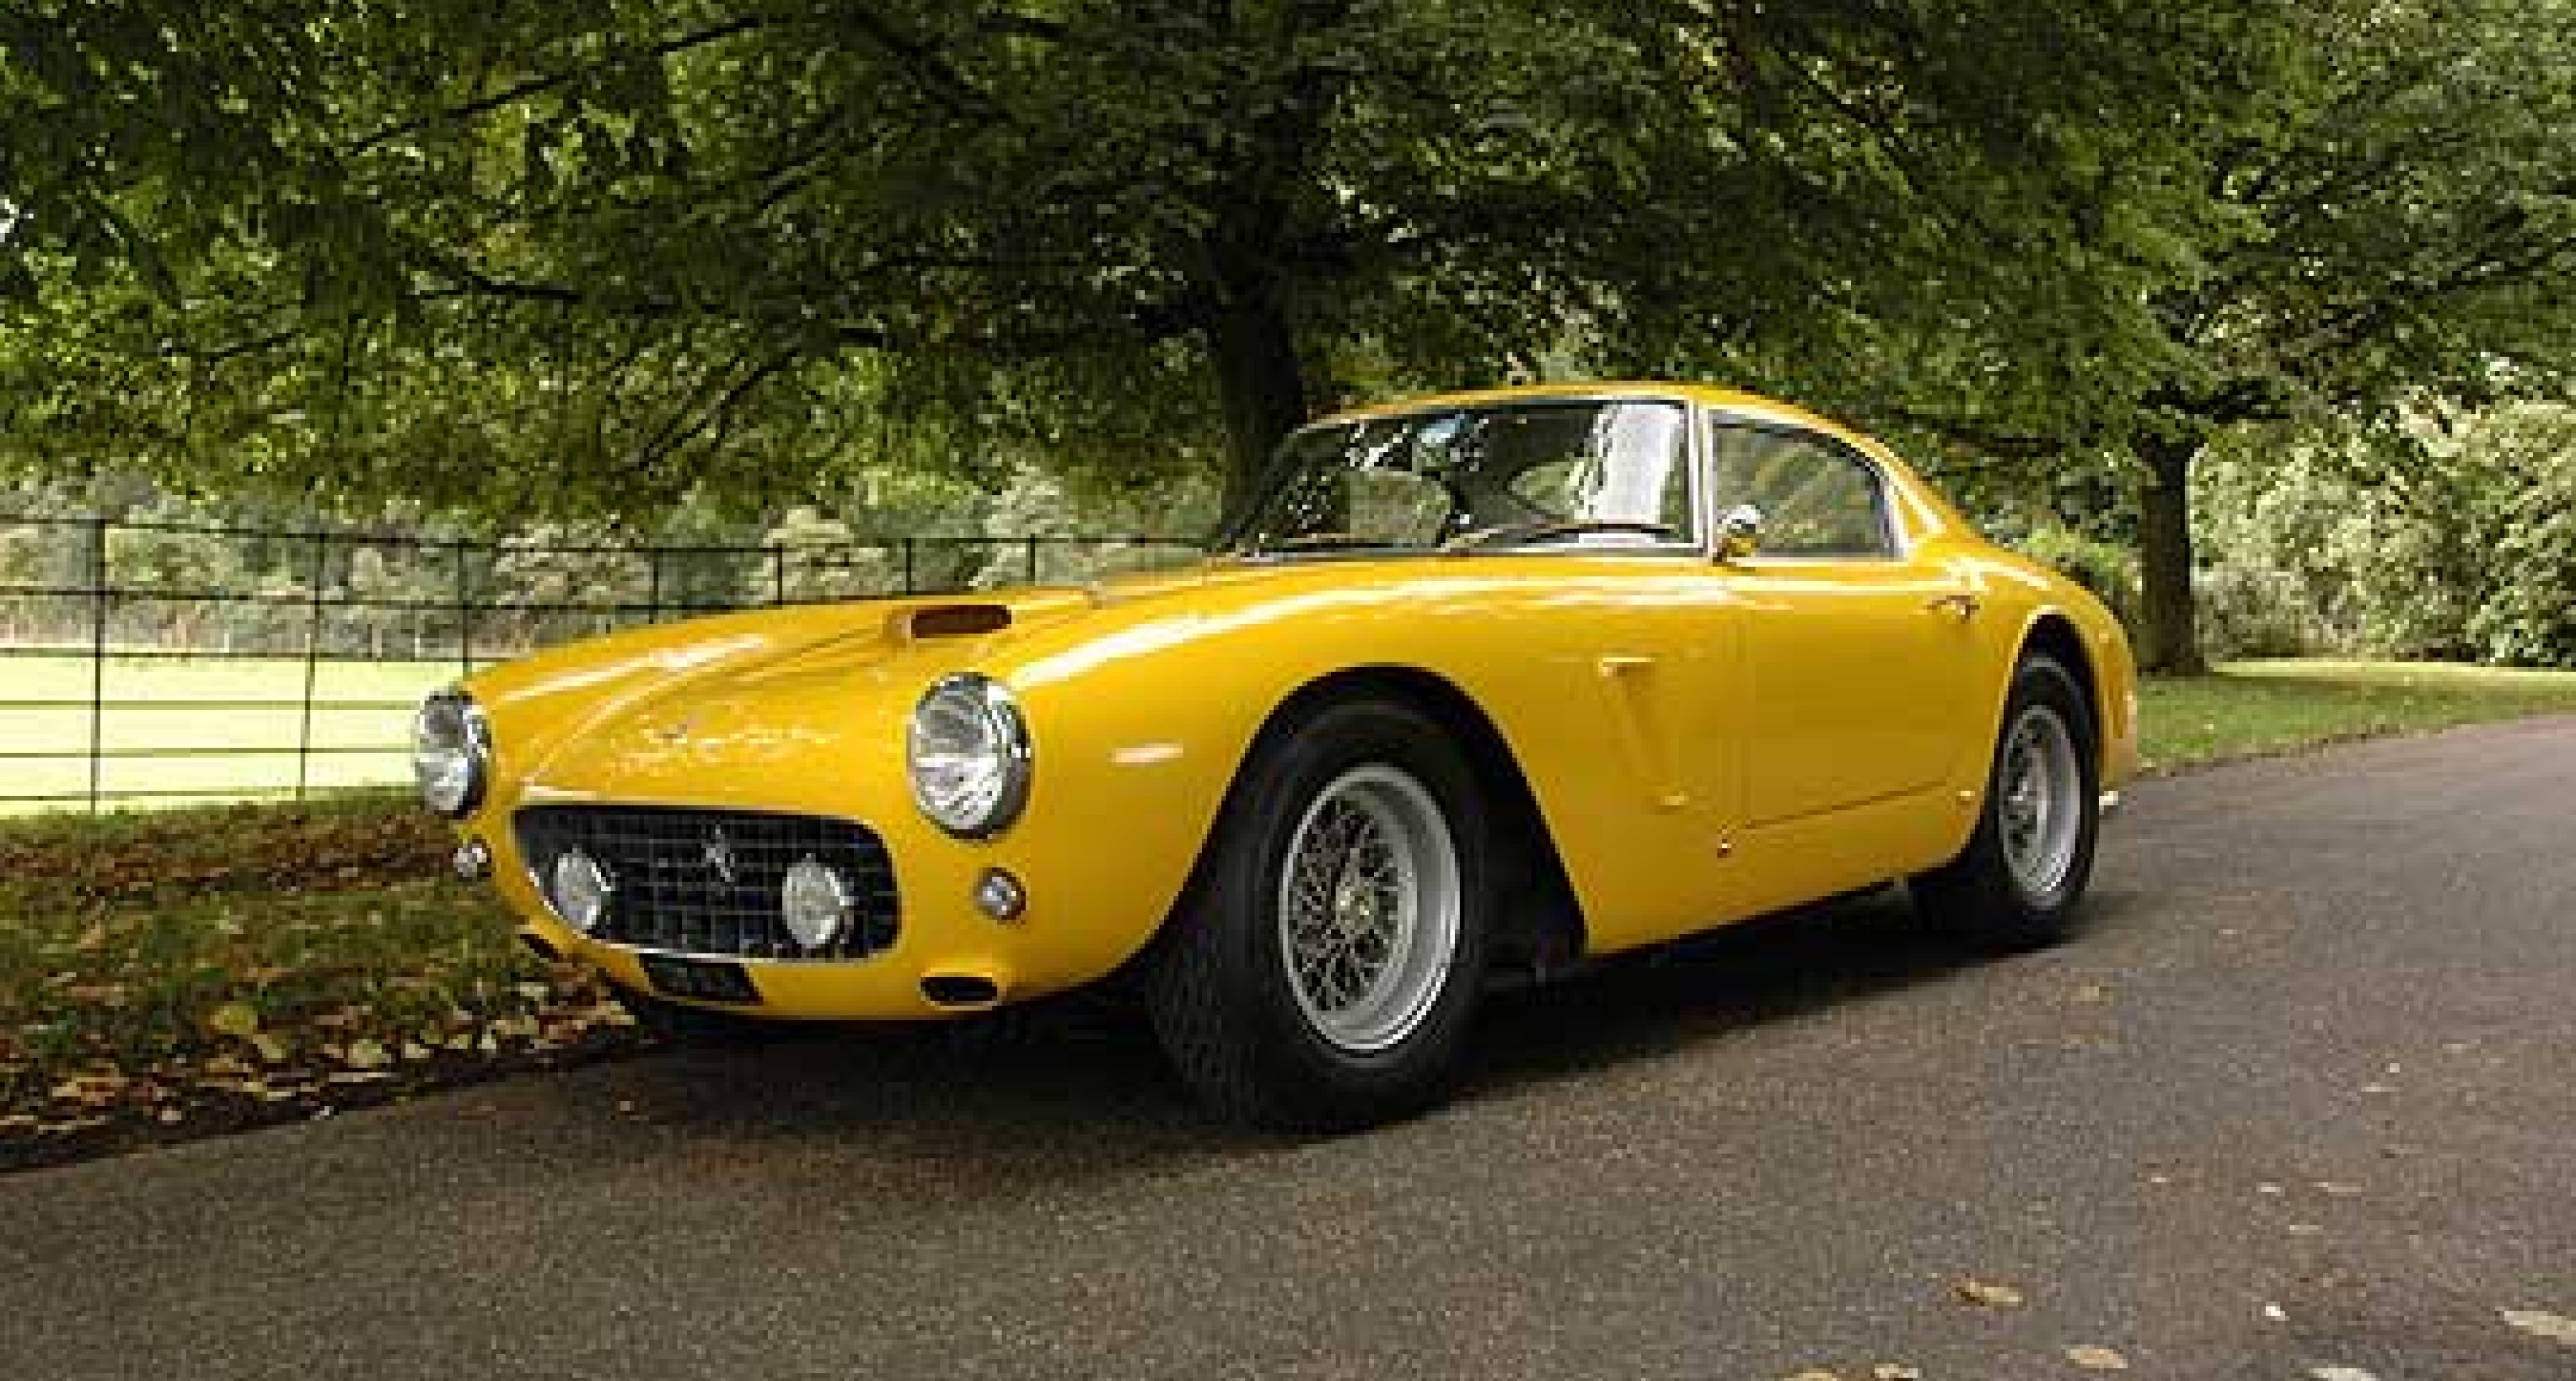 Ferrari 250 GT SWB Recreation: A Fast Drive in the Country